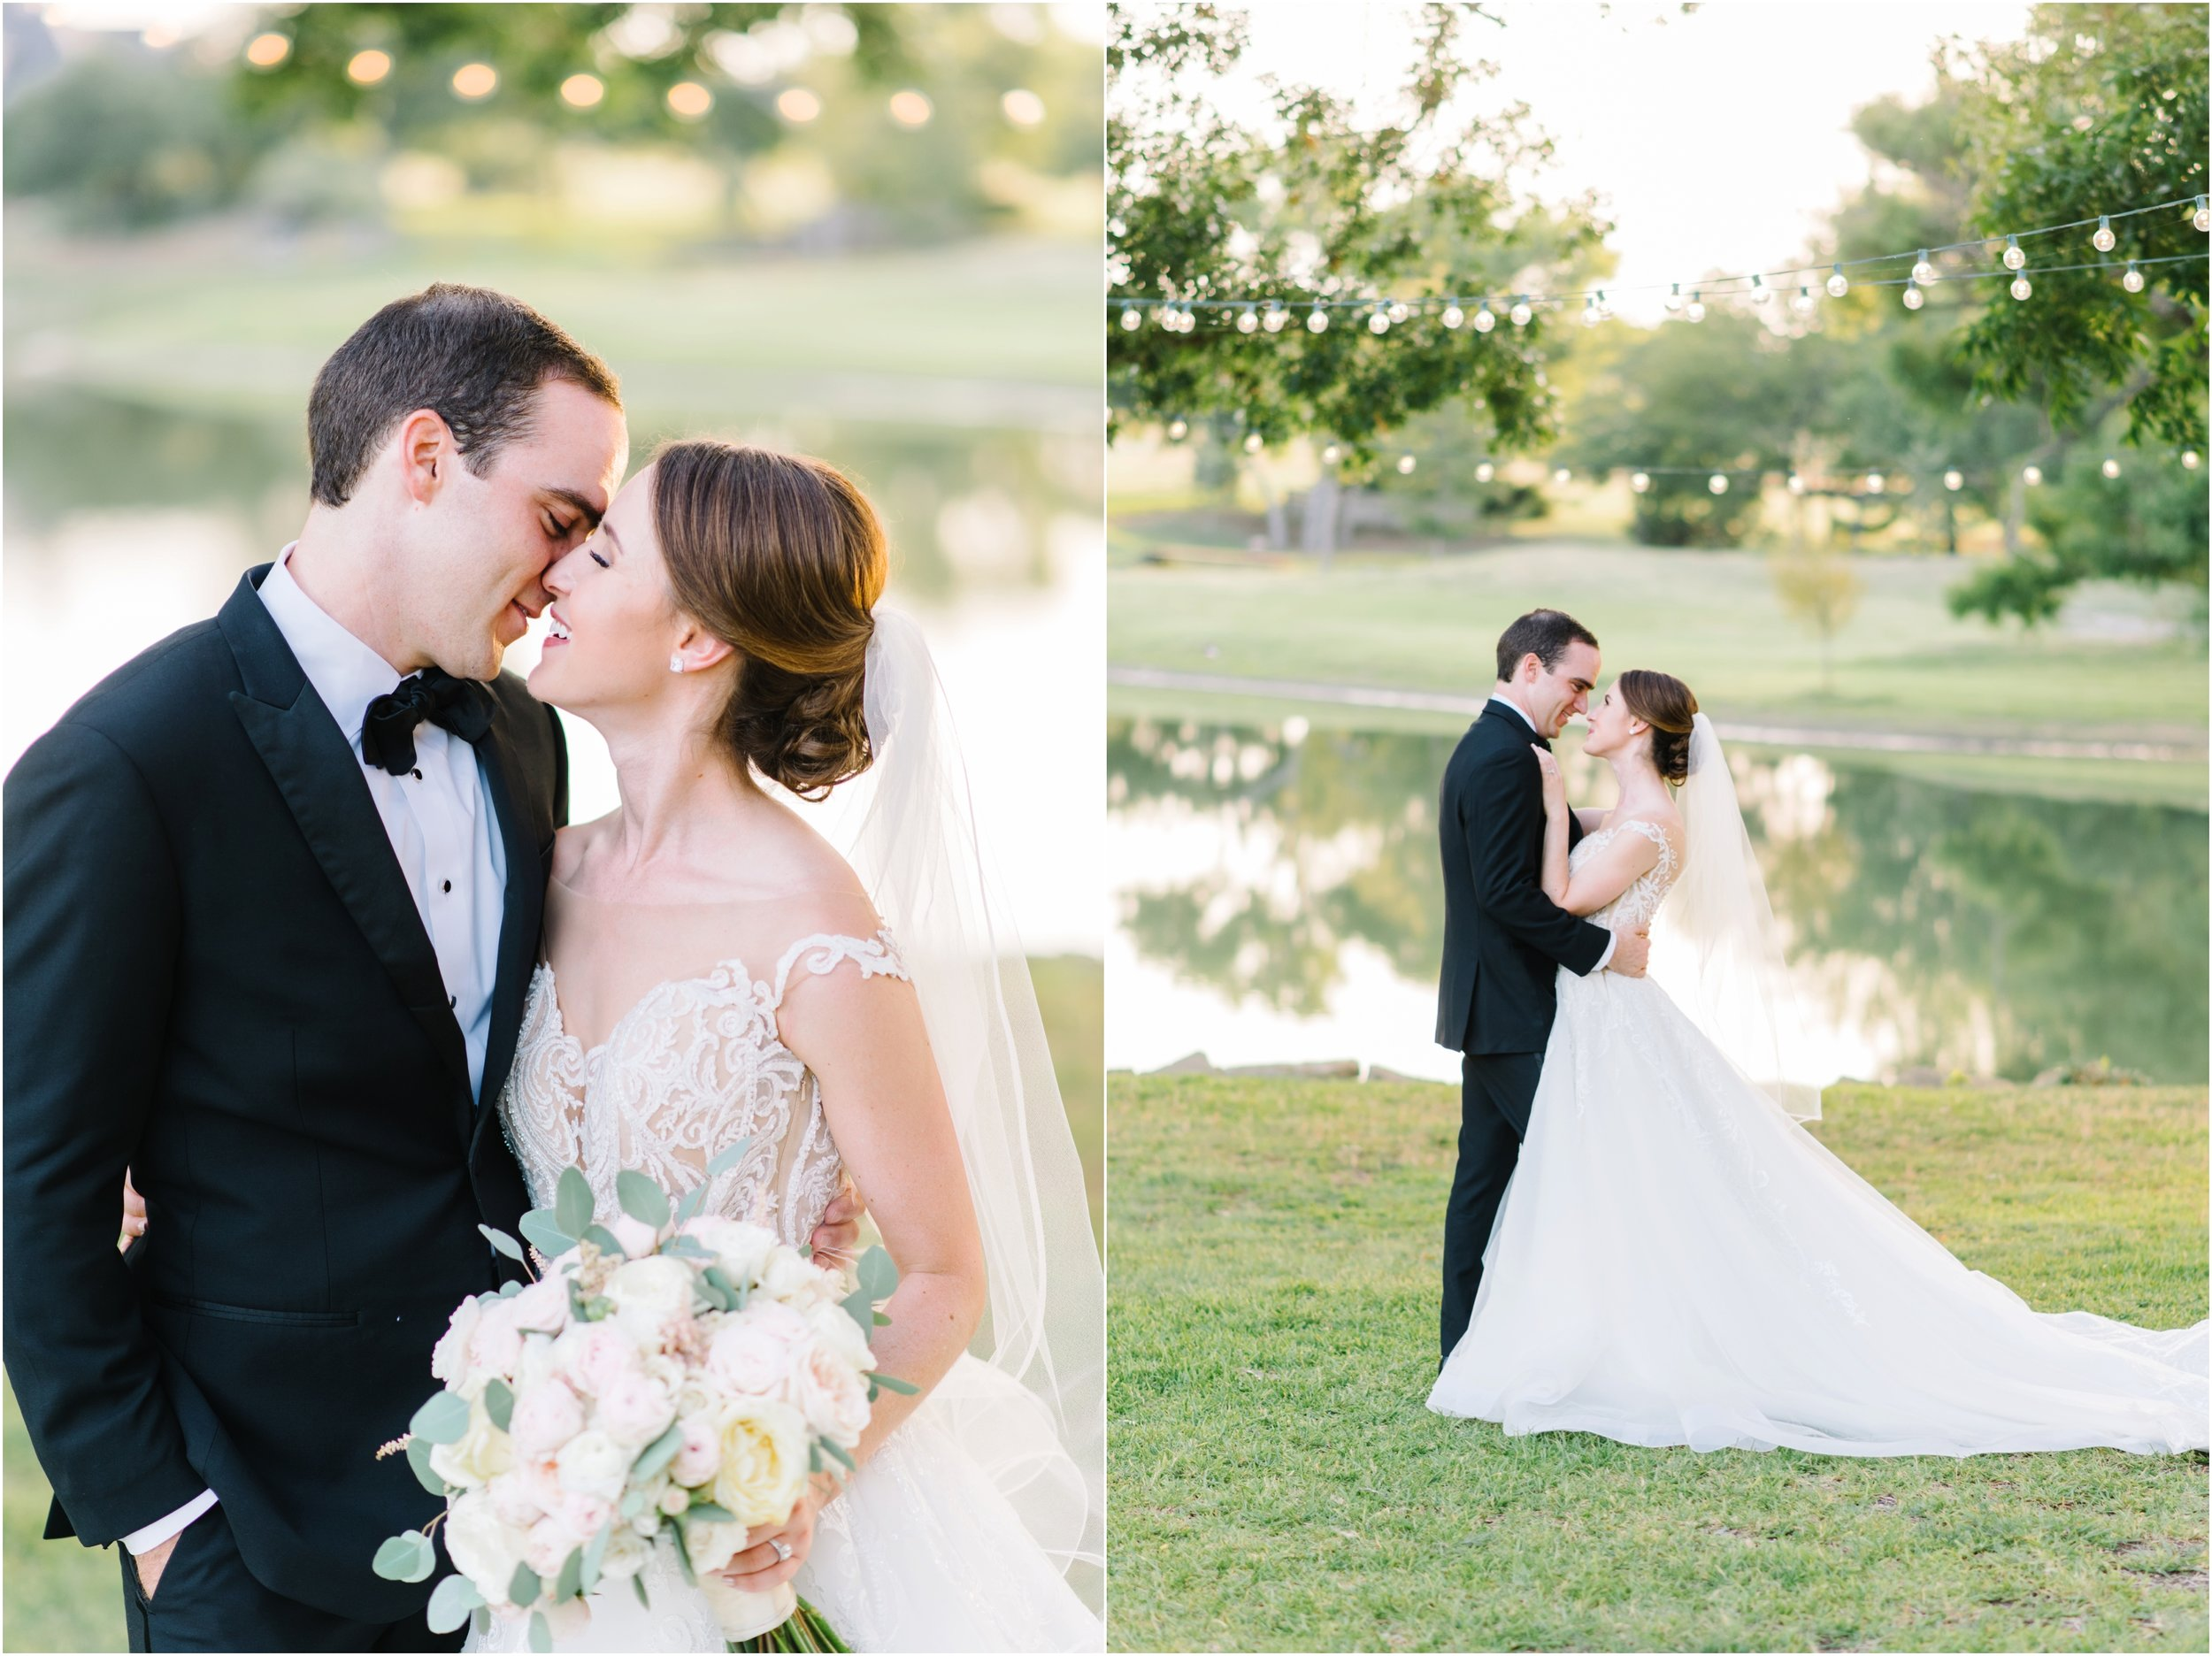 dallasweddingphotographer_fortworthweddingphotographer_texasweddingphotographer_mattandjulieweddings_whiterocklakewedding_KayleighClay_0038.jpg